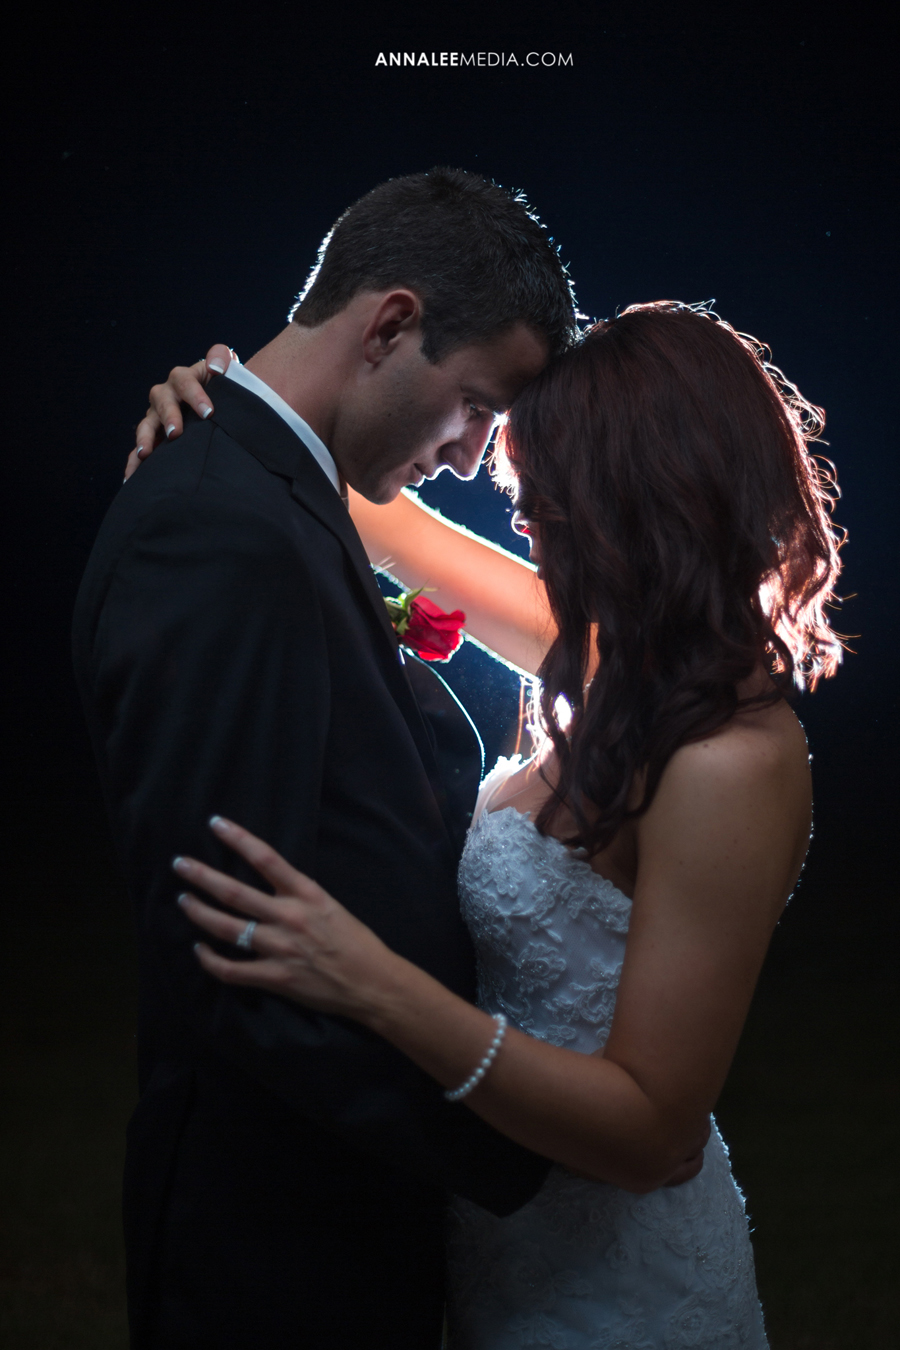 20-oklahoma-wedding-photographer-clauren-ridge-winery-vineyard-sara-memmott-tim-gilpin-night-couple-pose-flash-backlighting